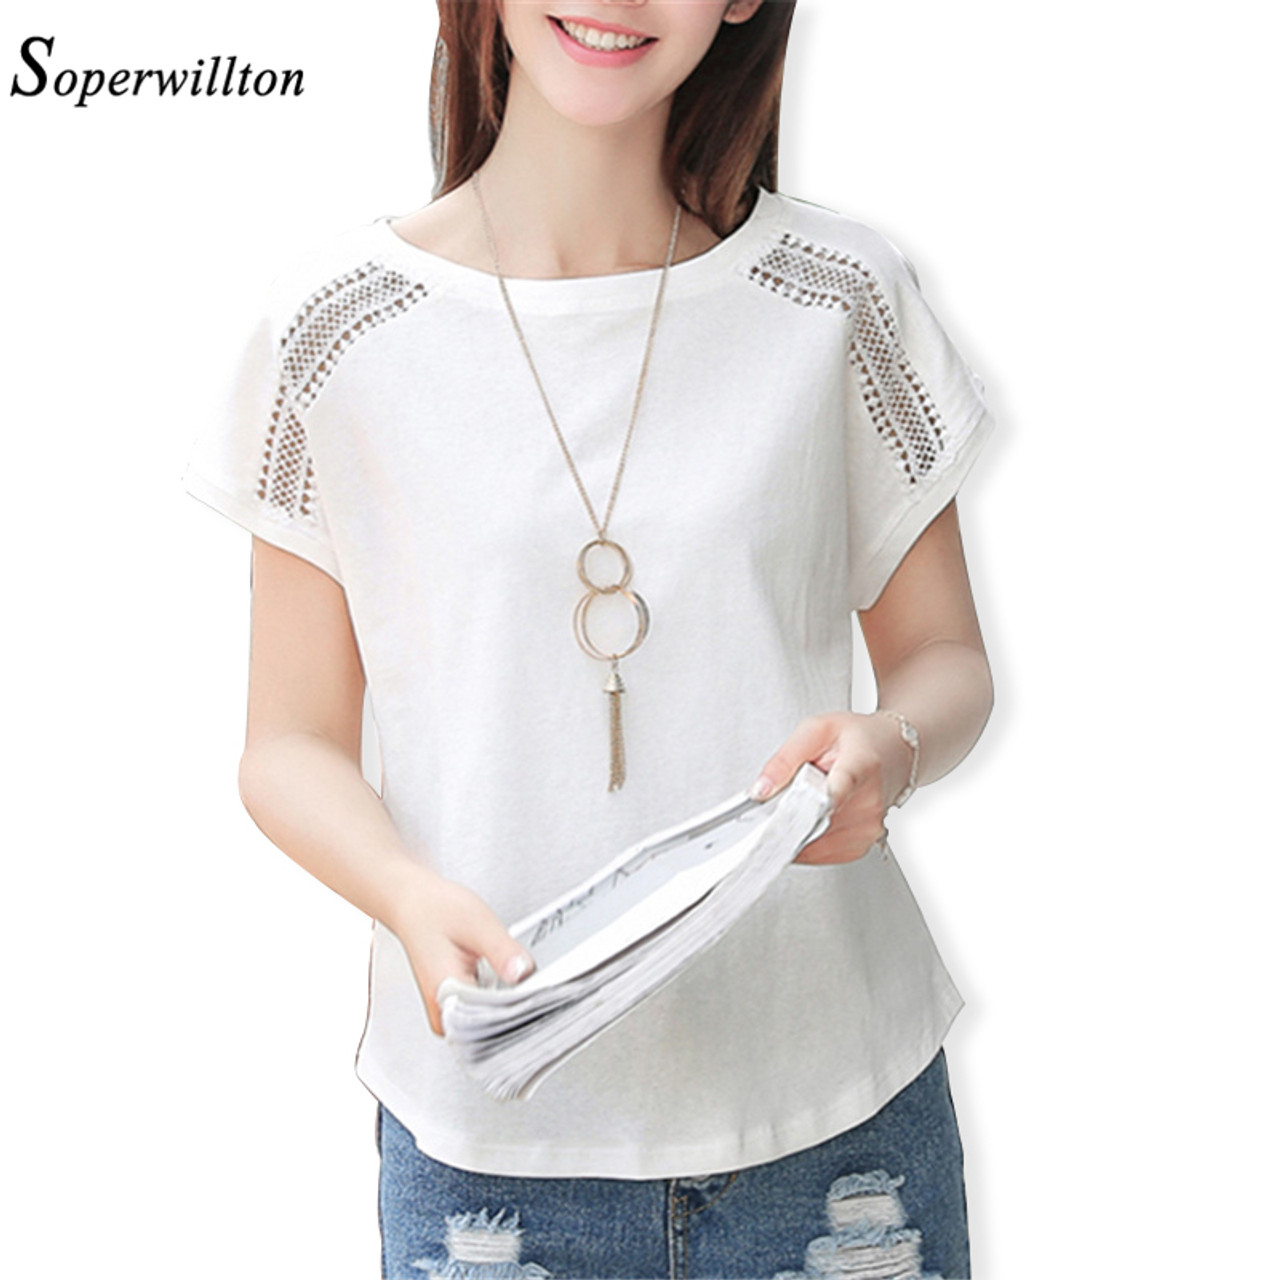 bf07dbc4d80 ... Summer Solim Casual T Shirt Women 2018 Hollow Out Lace Sleeve Kawaii T- Shirt For ...